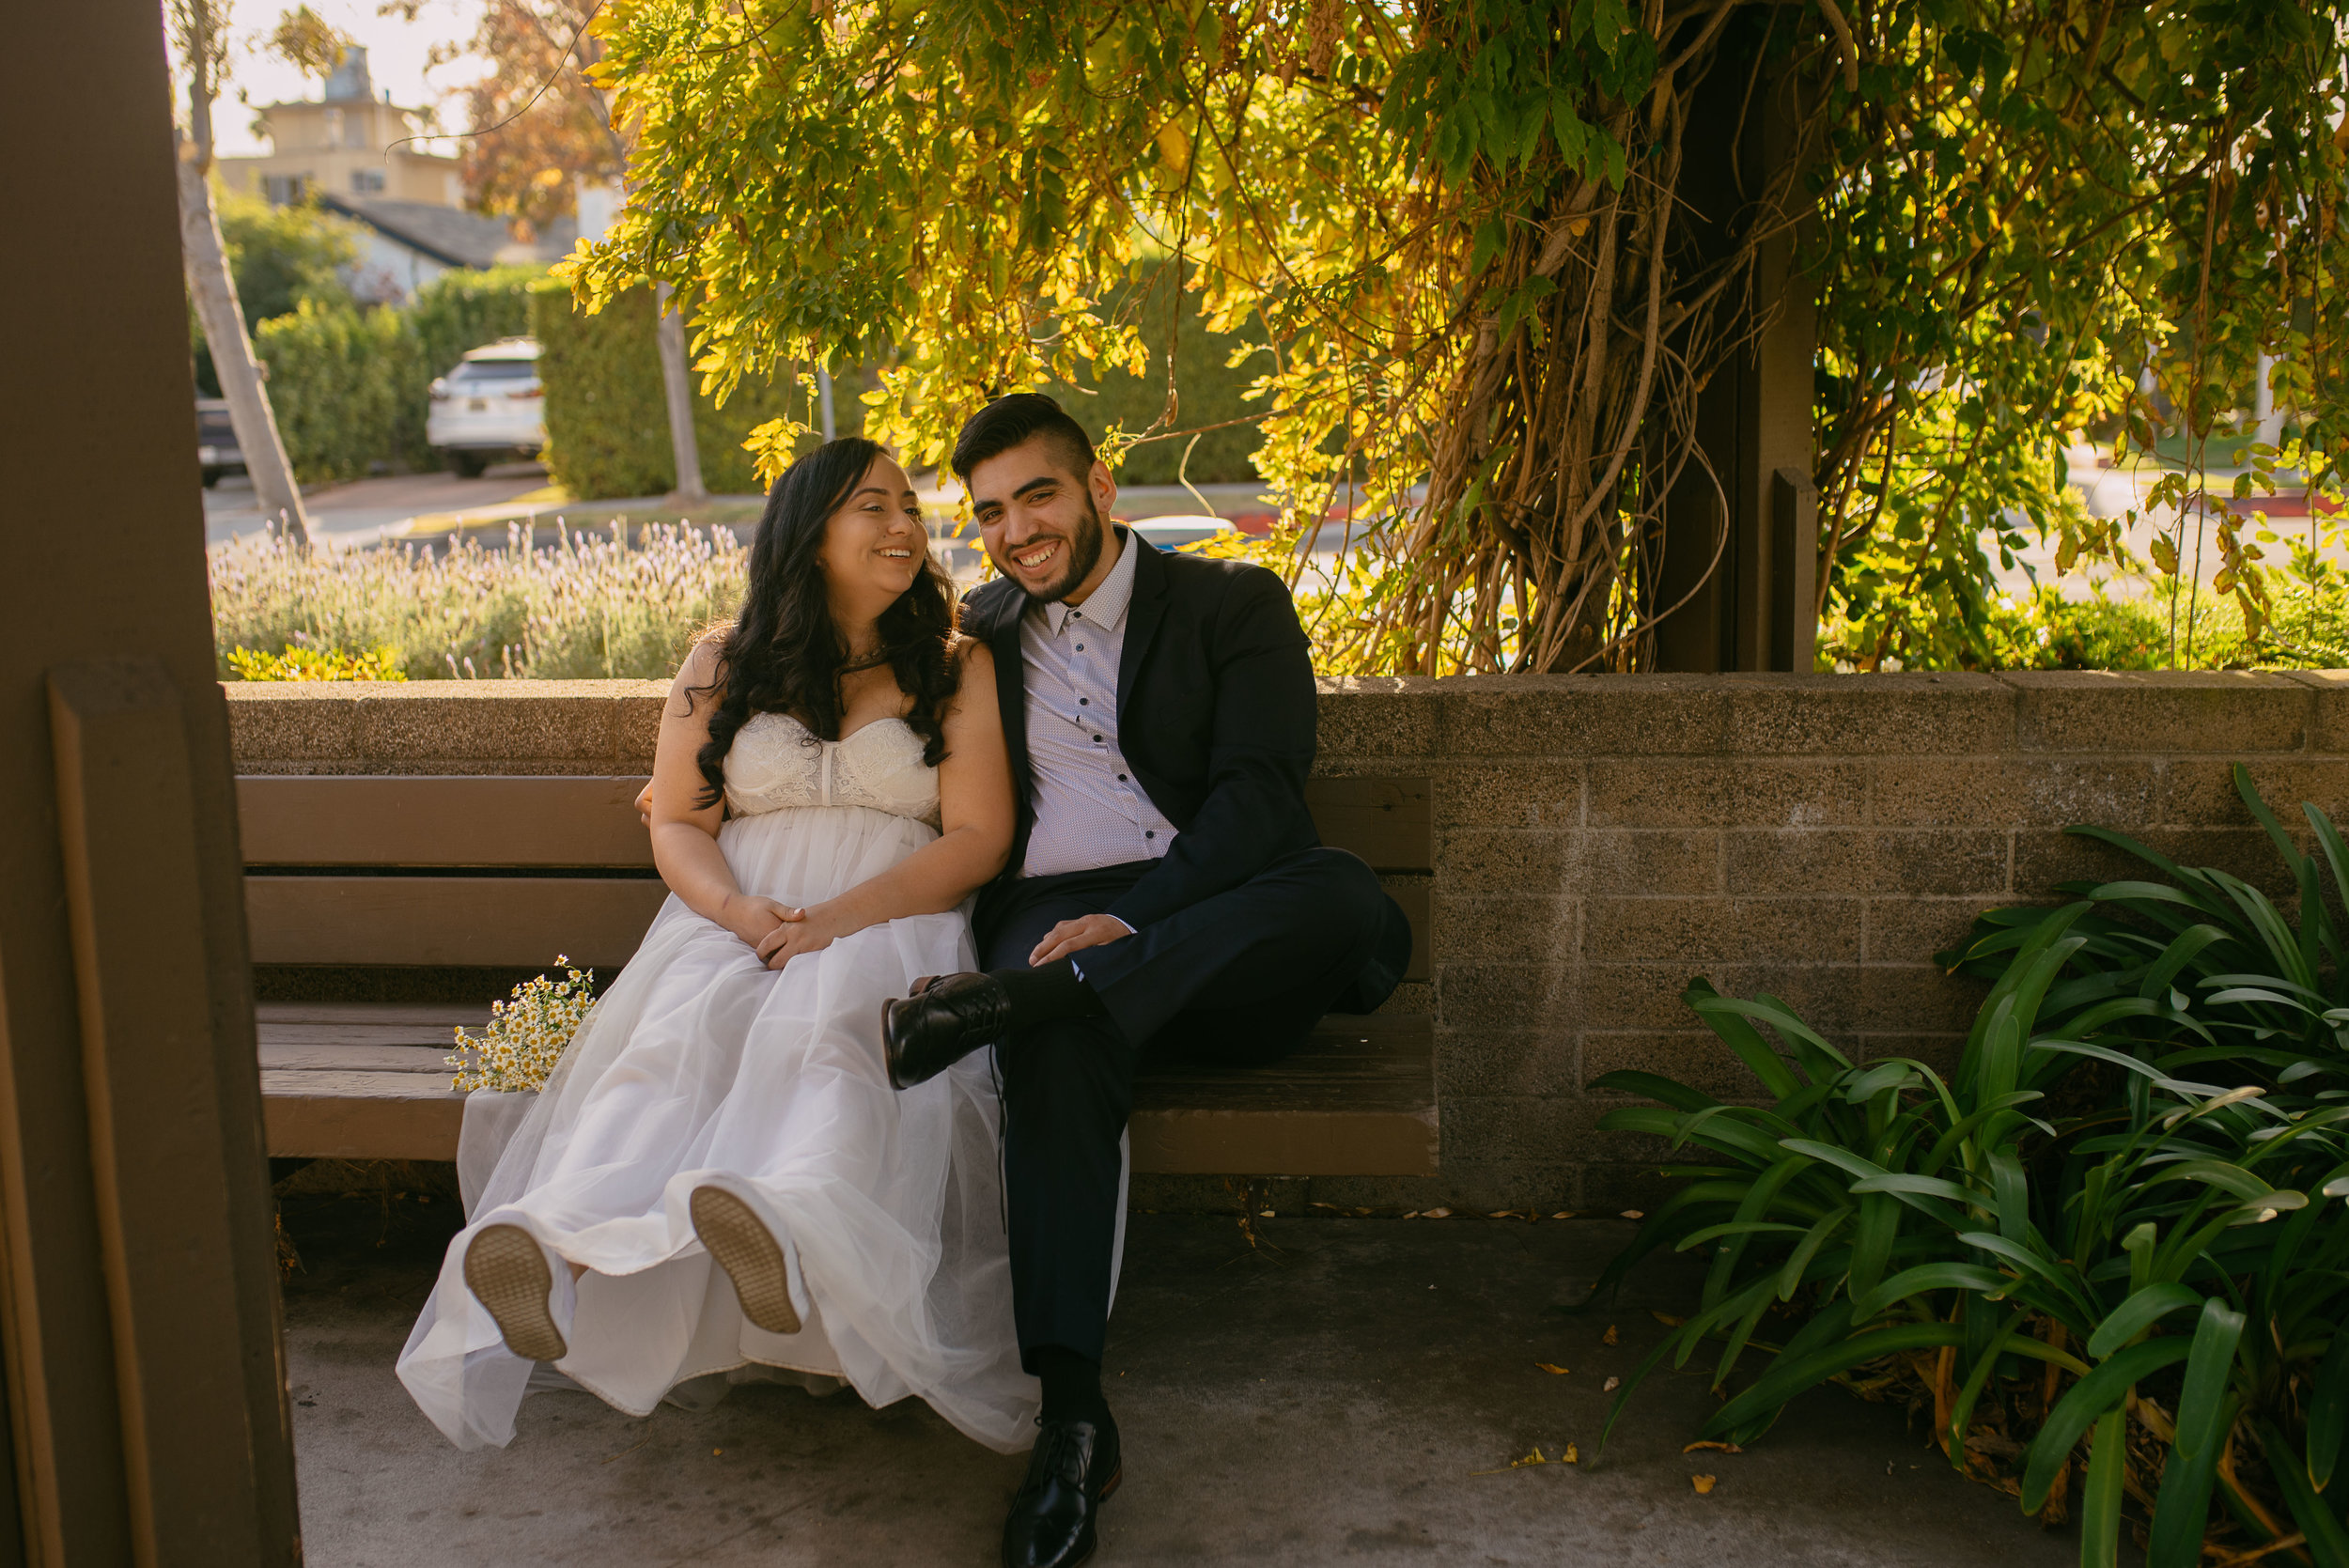 beverly-hill-courthouse-elopement-yanira-1-53.jpg